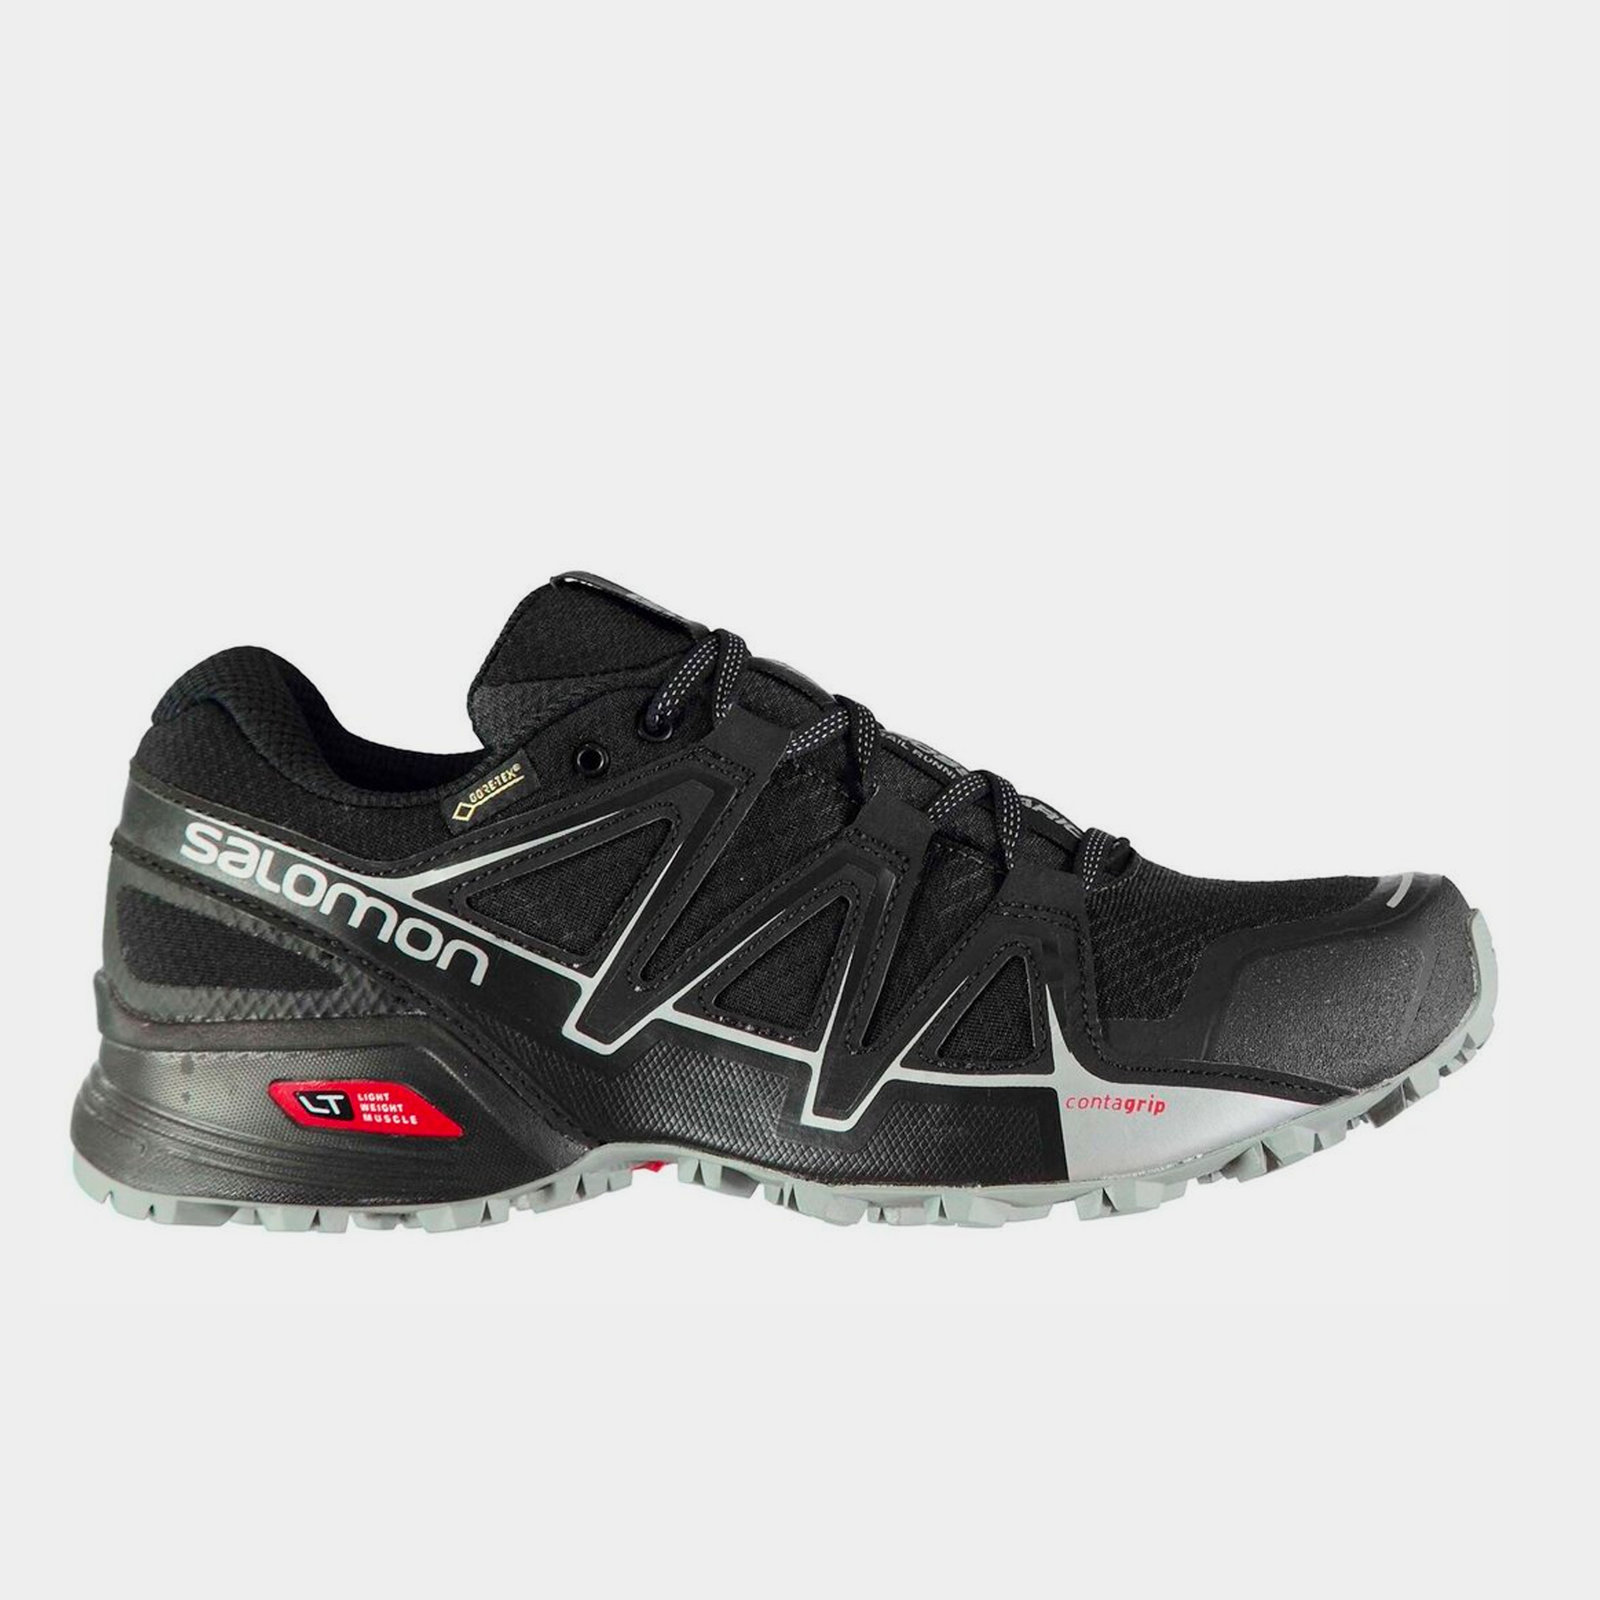 Details about Salomon Mens Speedcross V GTX Trail Running Shoes Footwear Trainers Training